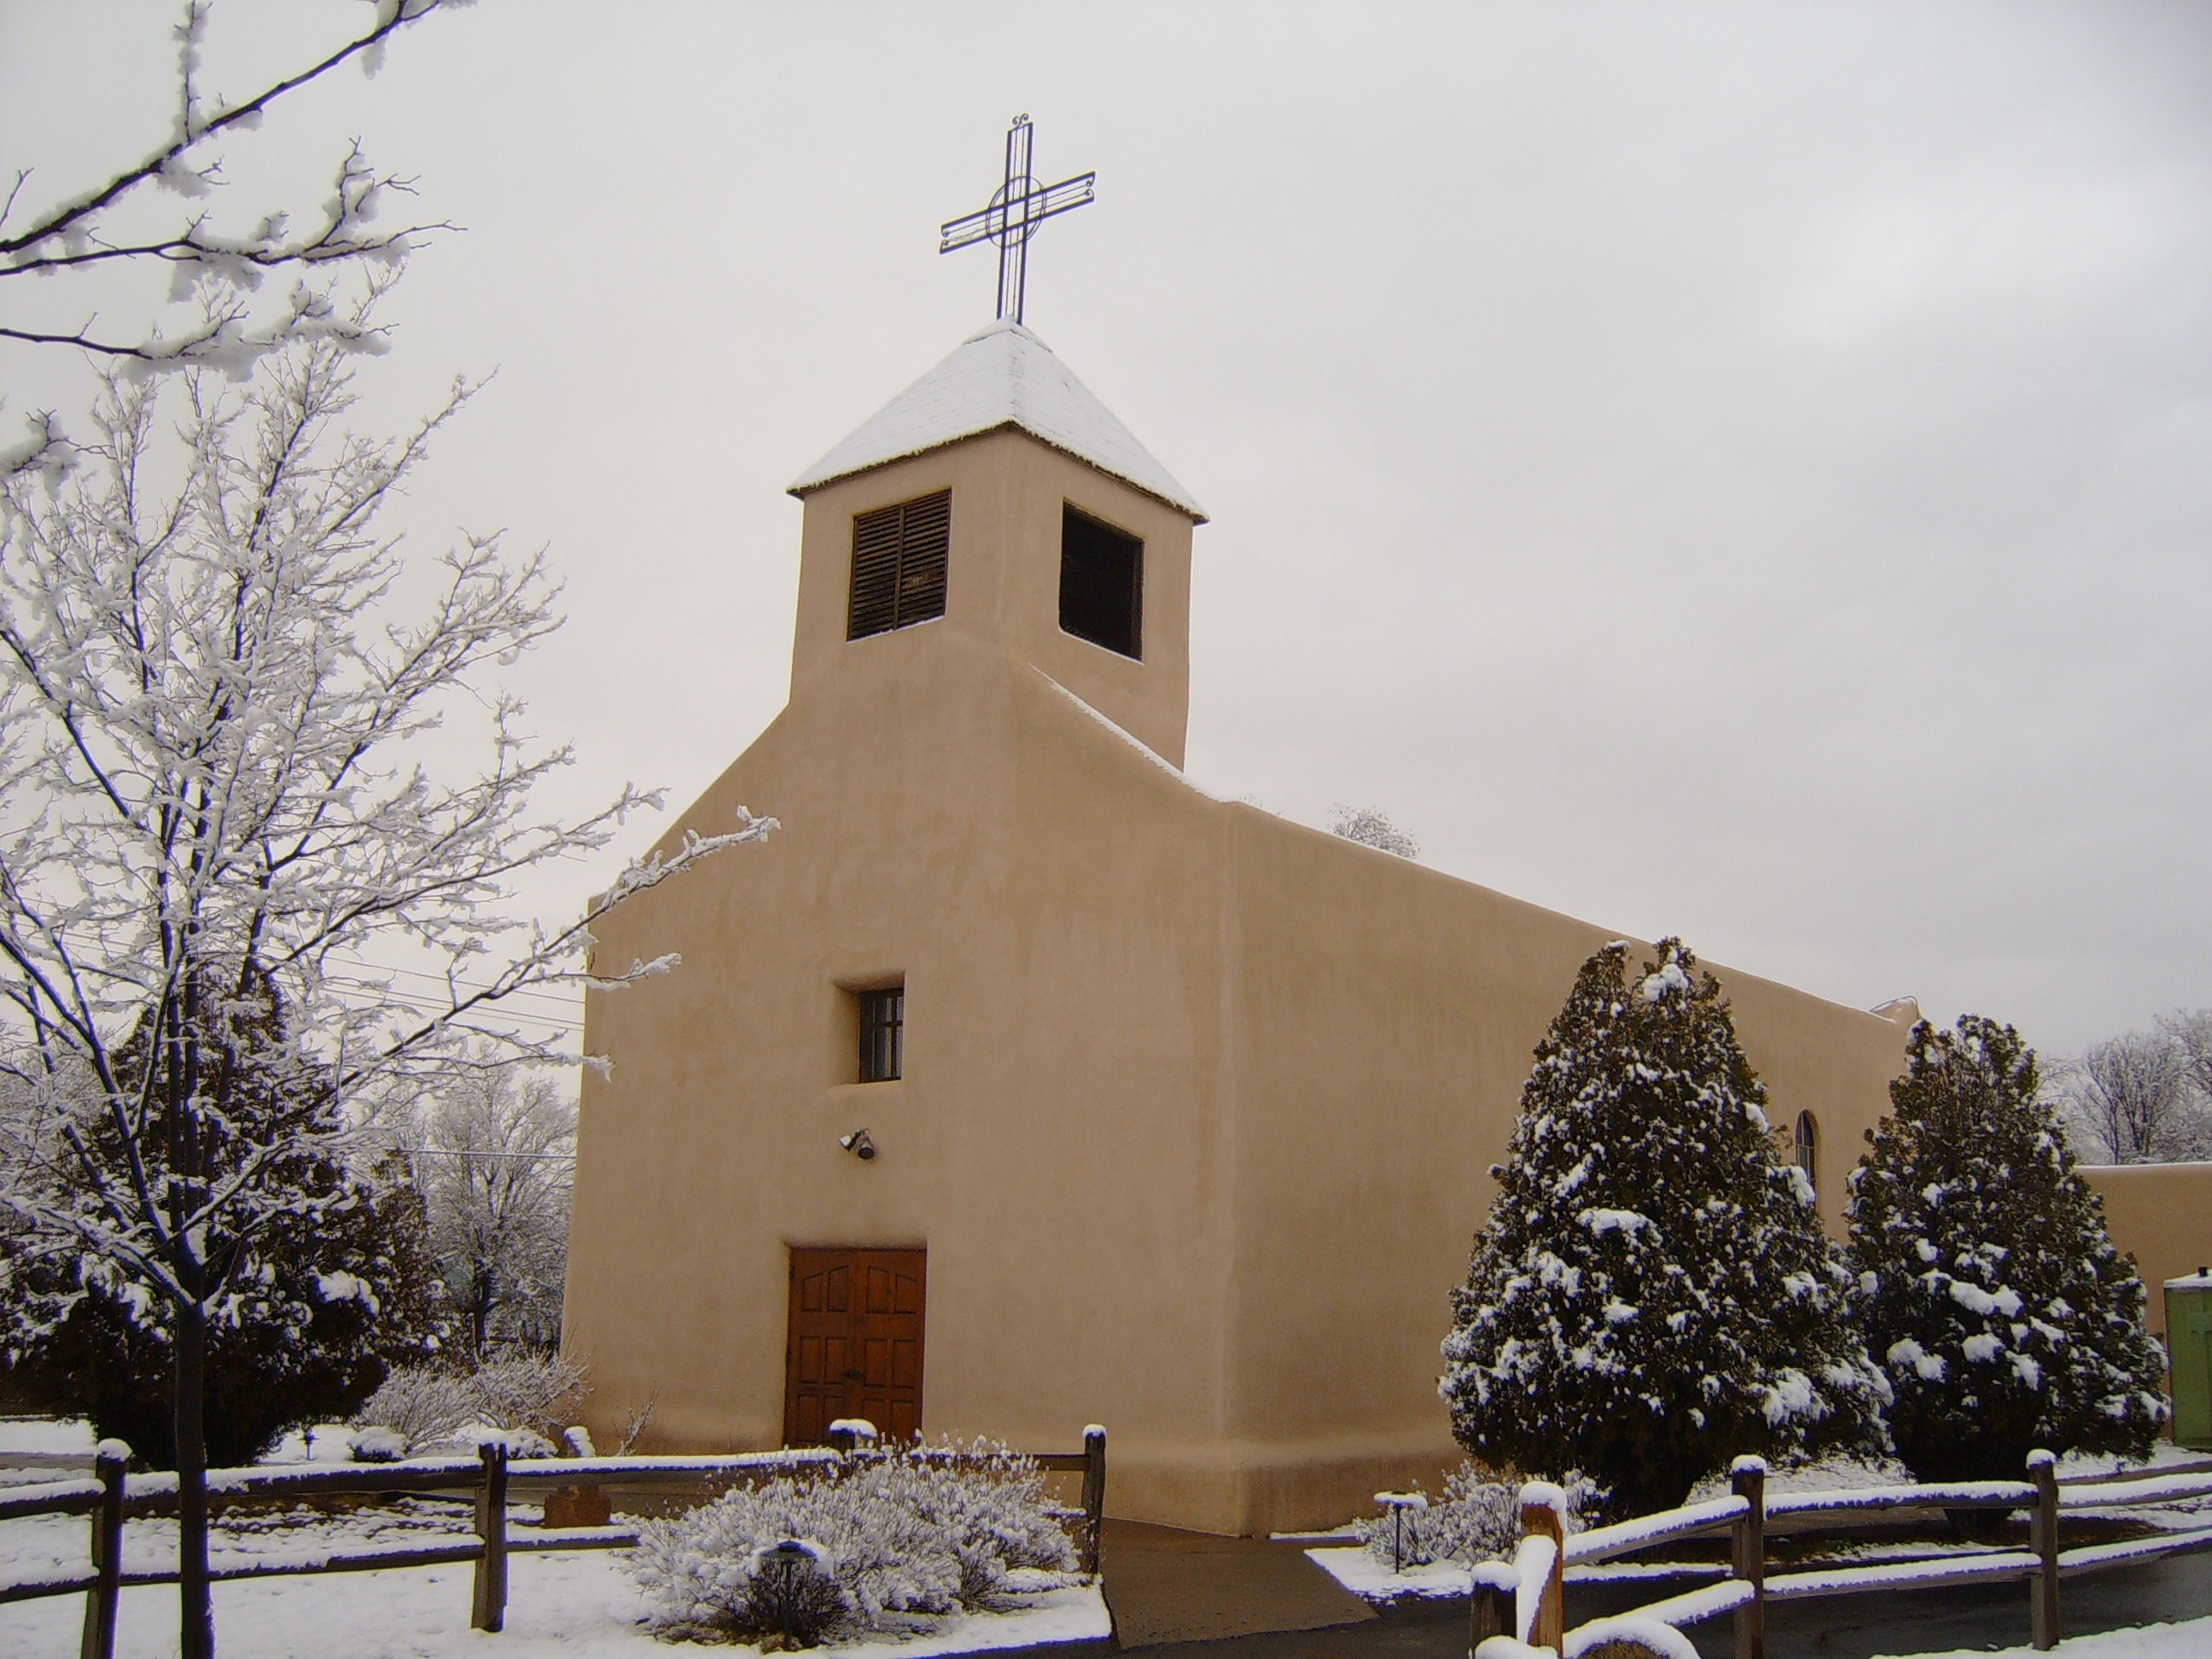 San Isidro Catholic Church in Winter